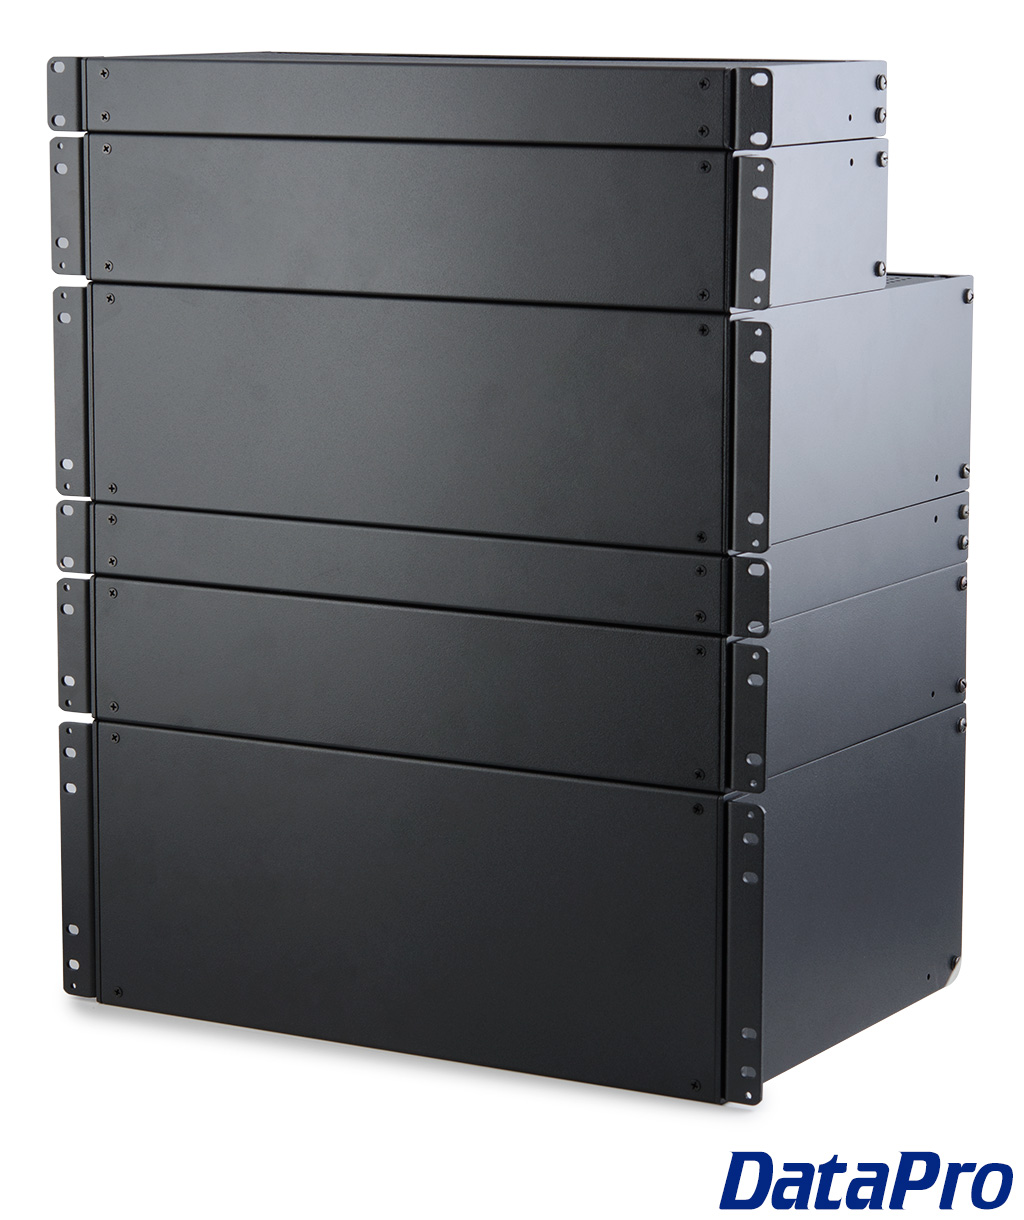 Rack Mount Enclosures : Rack mount enclosure cases blank datapro